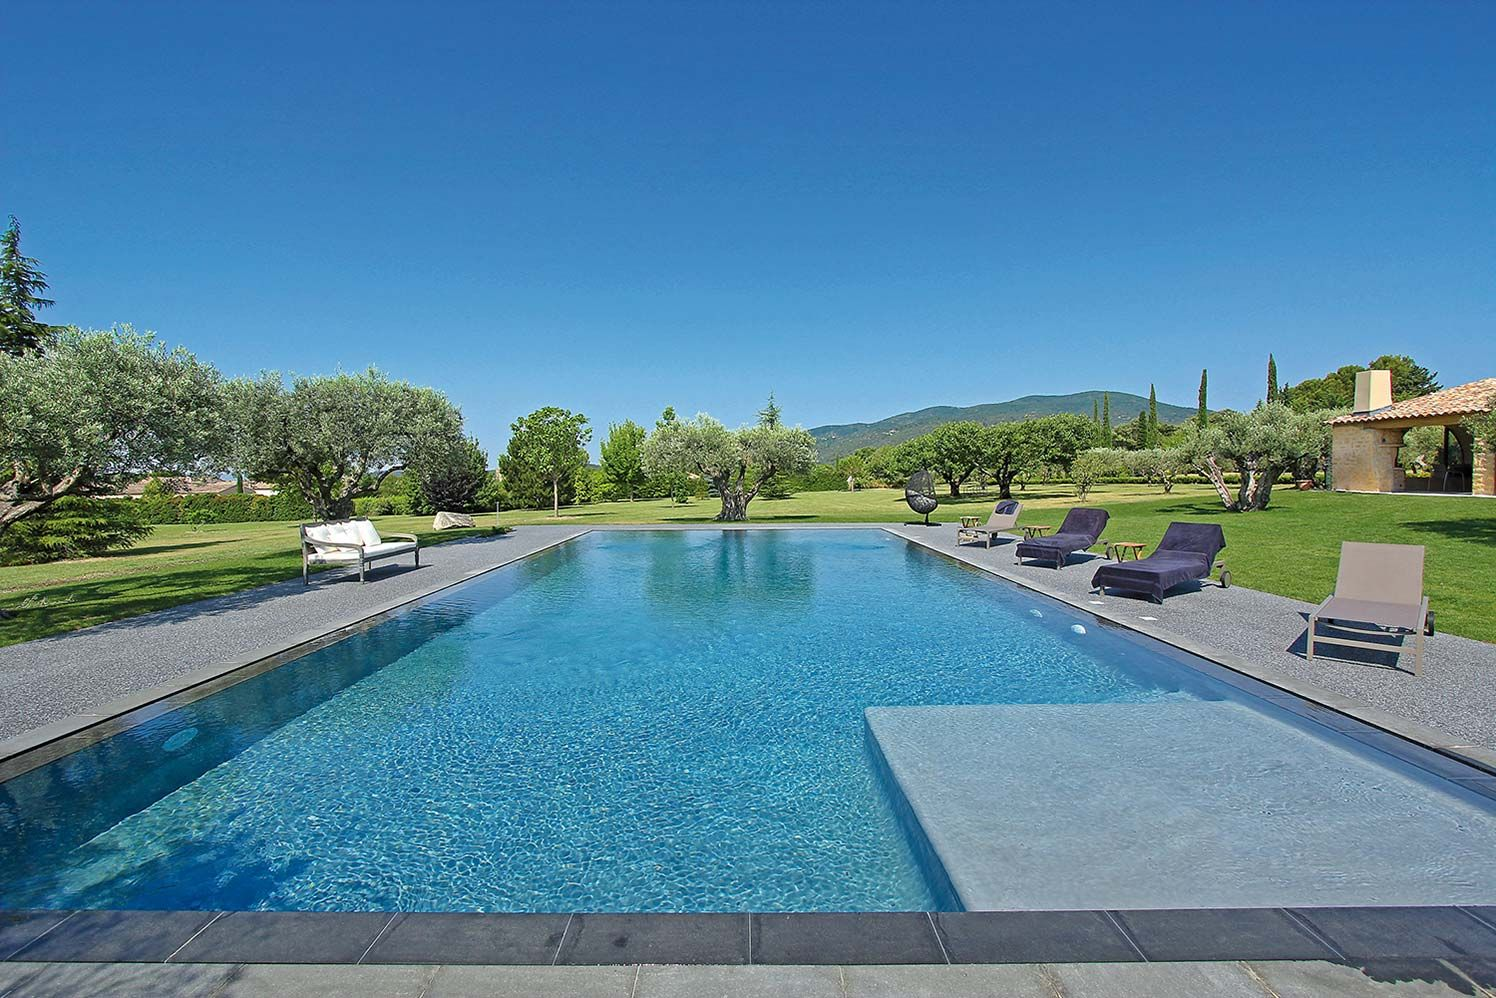 La piscine petite note contemporaine provence and for Piscine debordement